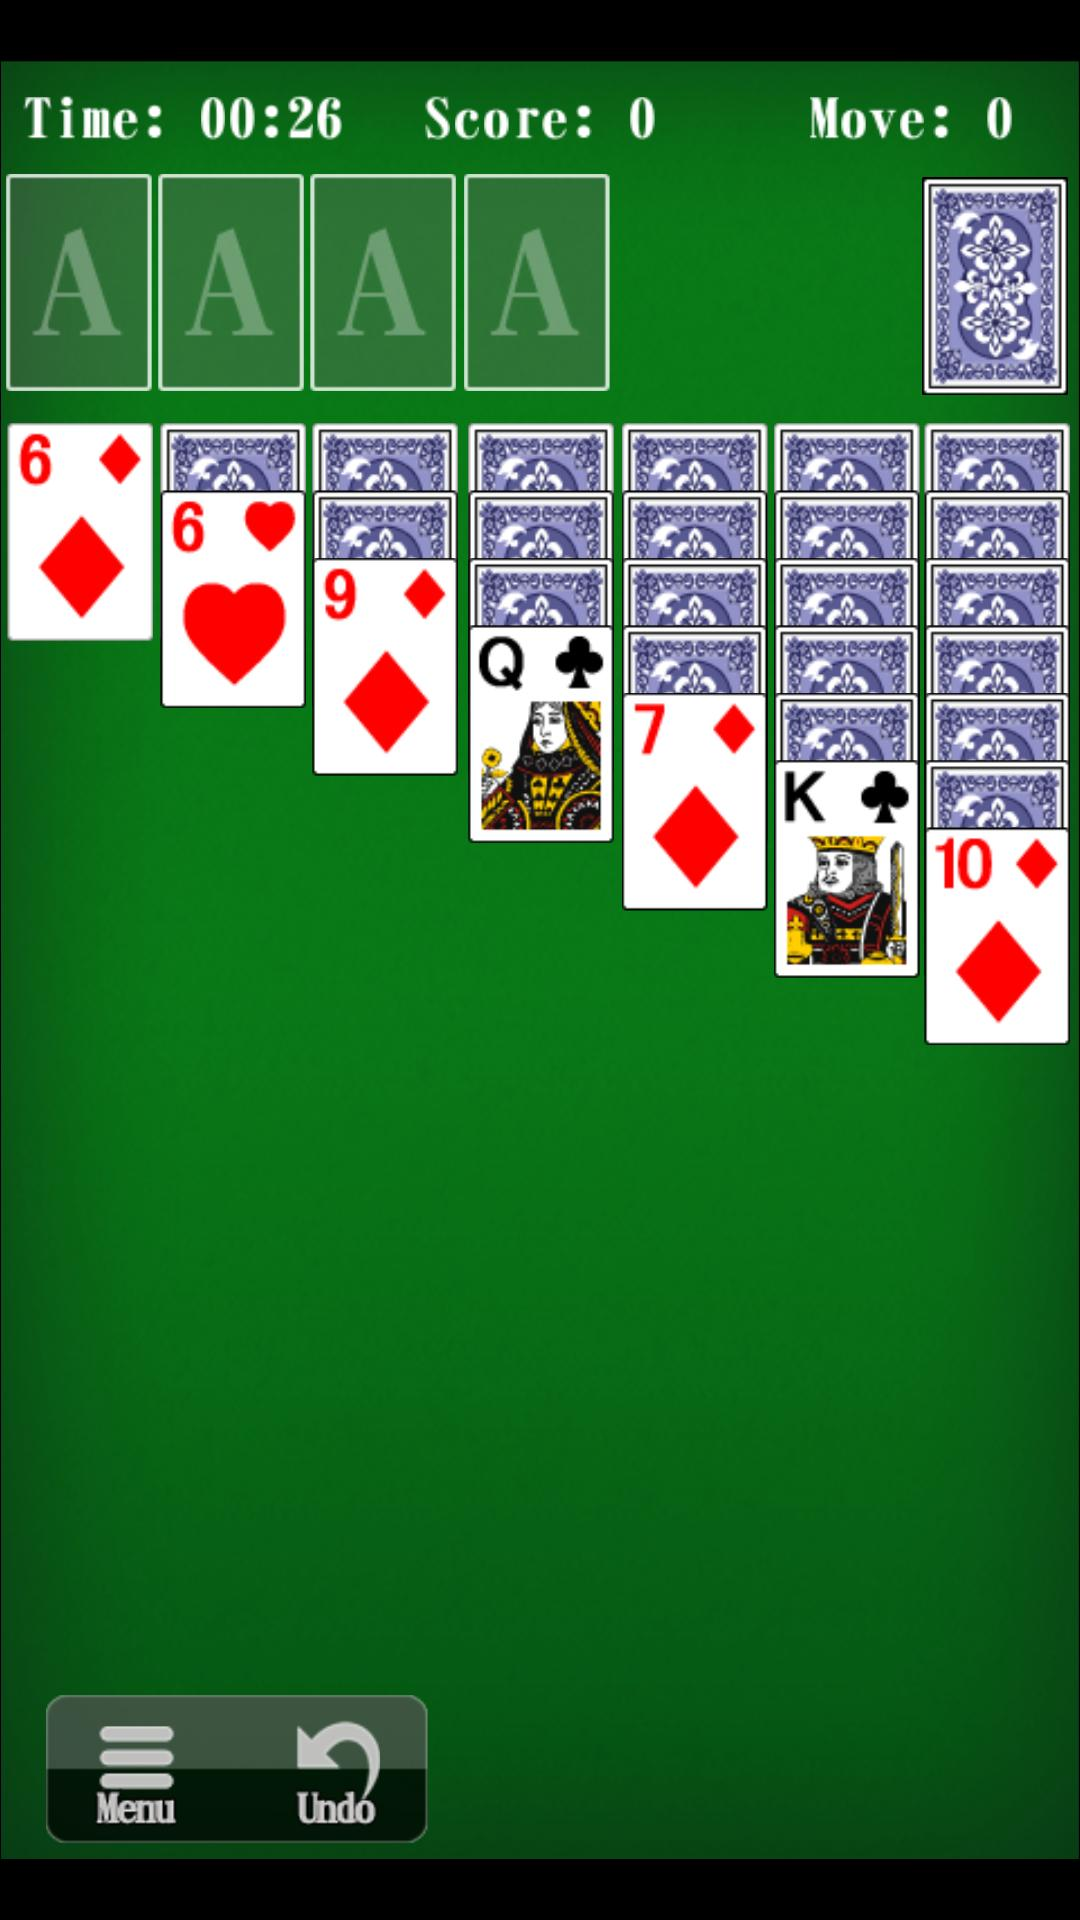 Solitaire 1.6.15 Screenshot 15